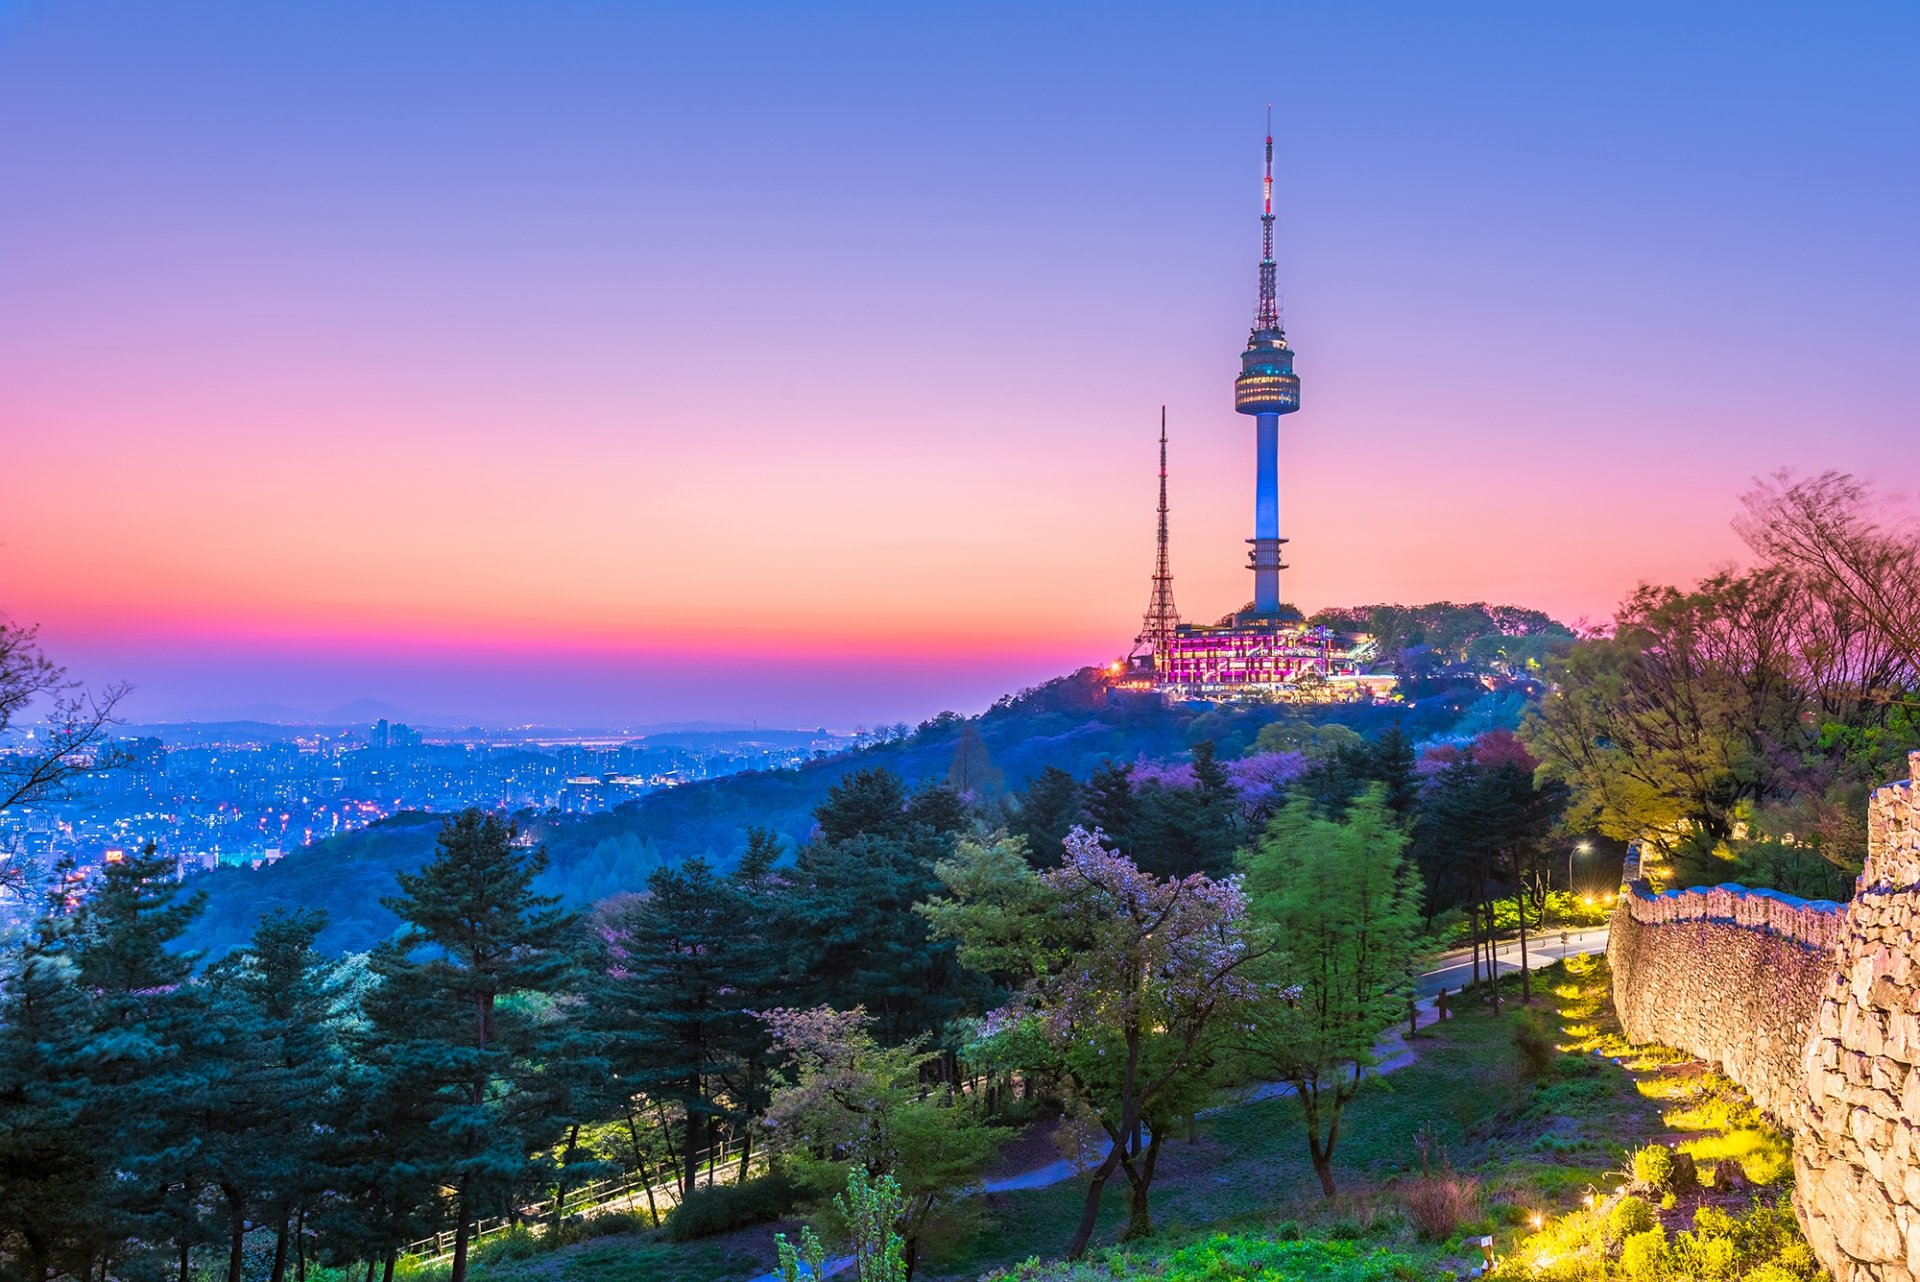 Two communication towers on the top of a hill at sunset